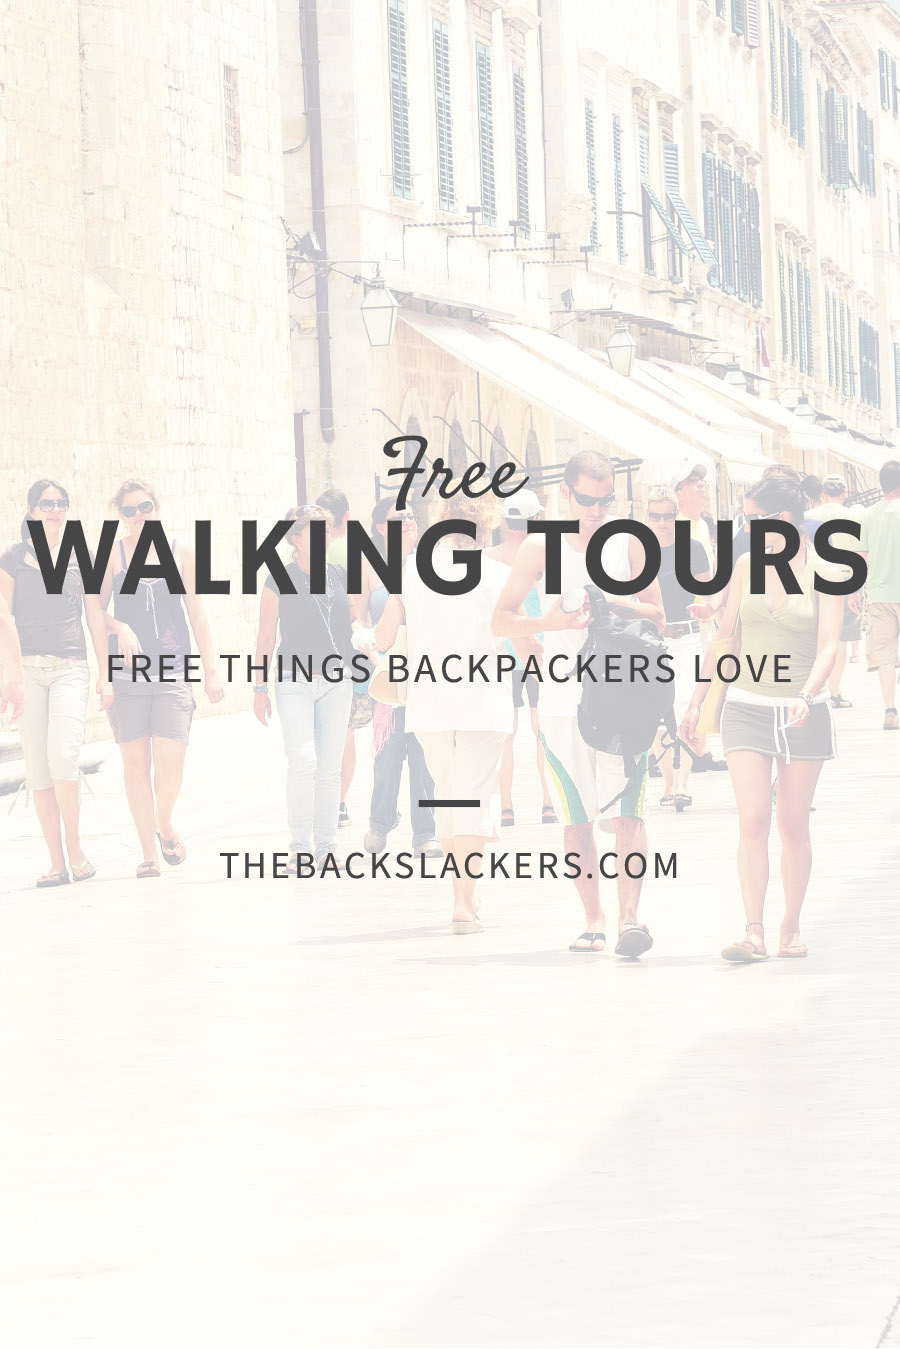 Free Things Backpackers Love - FREE WALKING TOURS